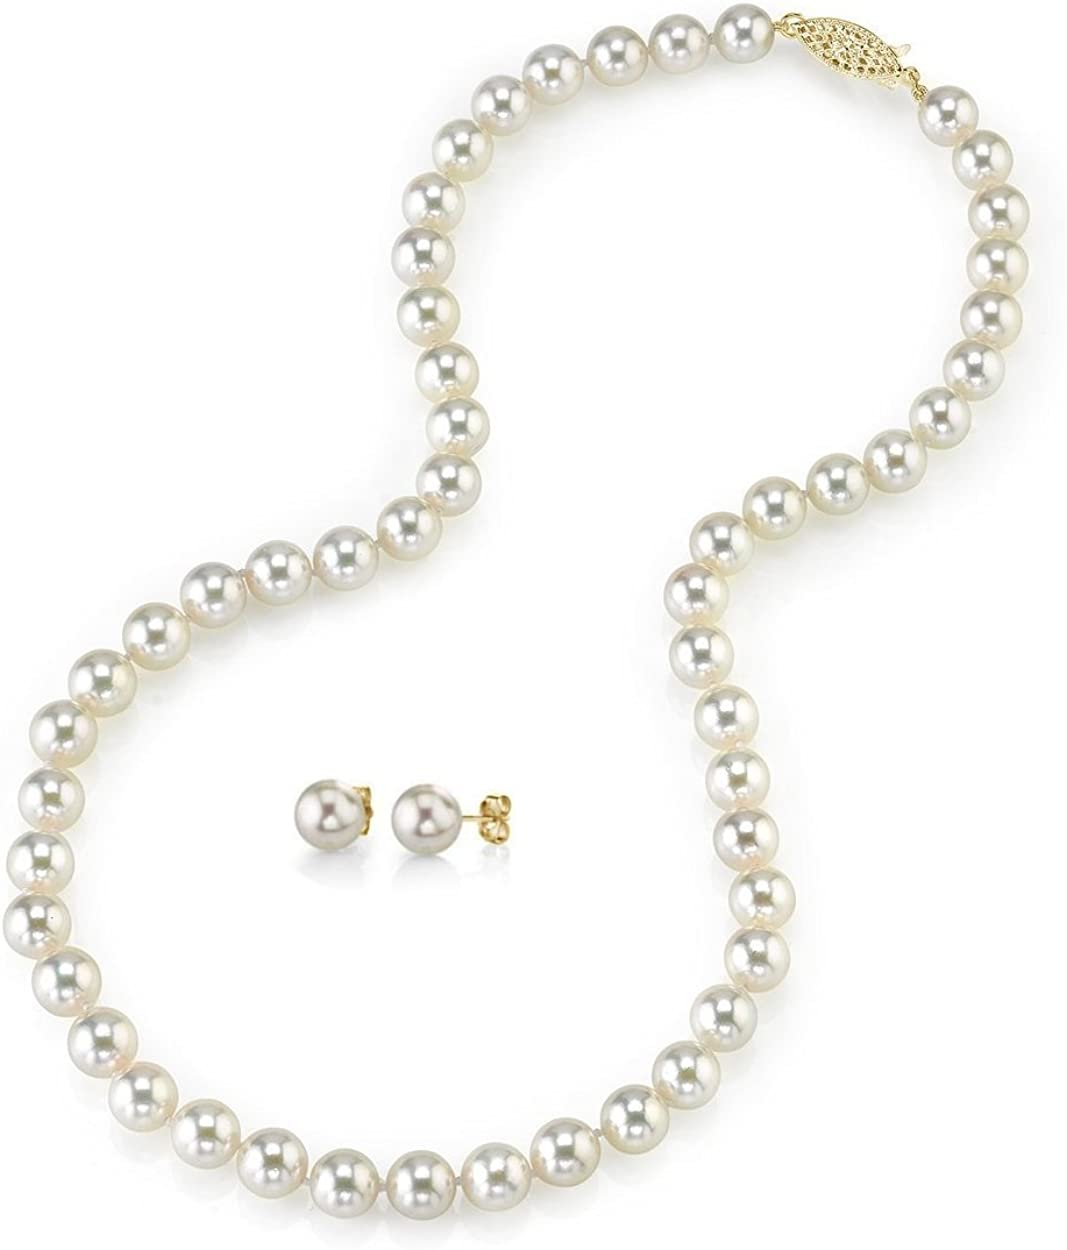 THE Oakland Mall PEARL New color SOURCE 14K Gold 6.5-7mm Akoya Quality Round AAA White